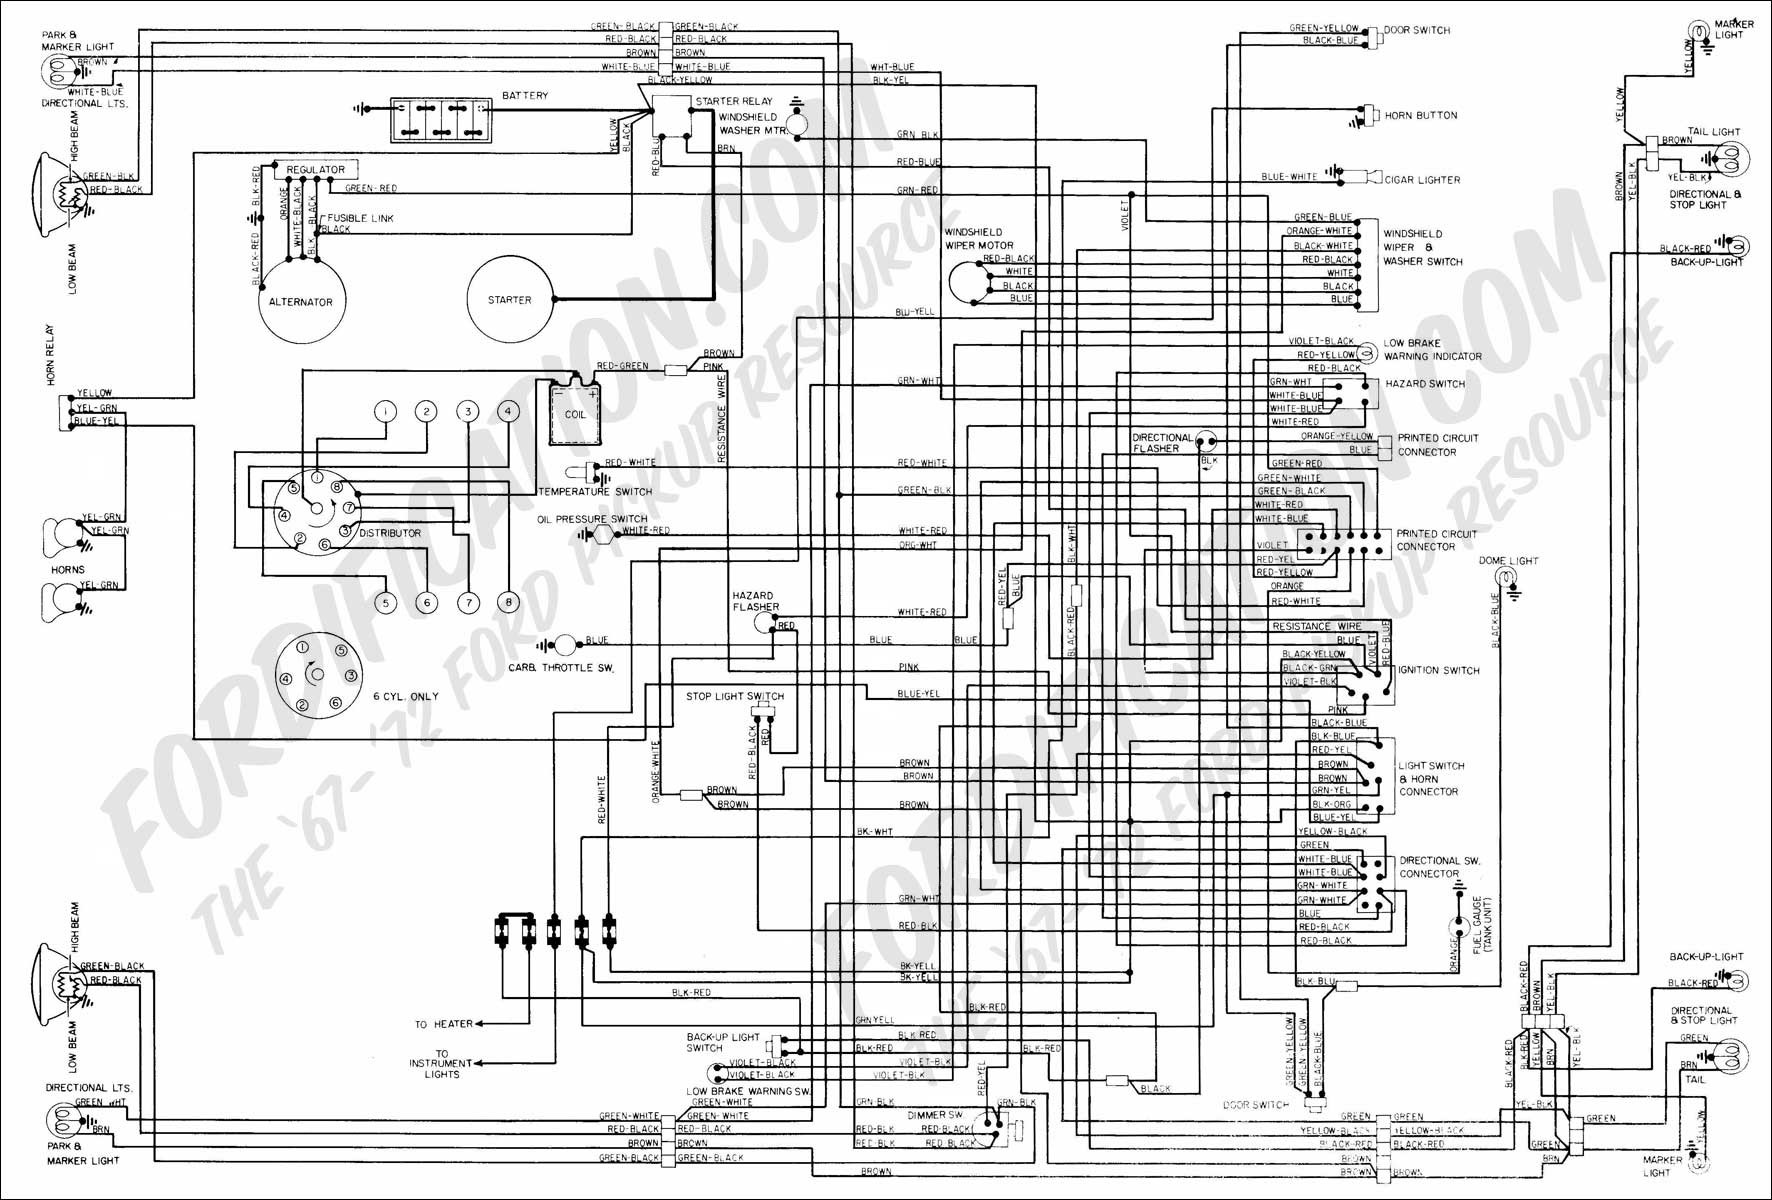 Ford Escape Fuse Box Diagram 2008 Schematic Diagrams 1987 Ranger Wiring Also 2006 Sienna